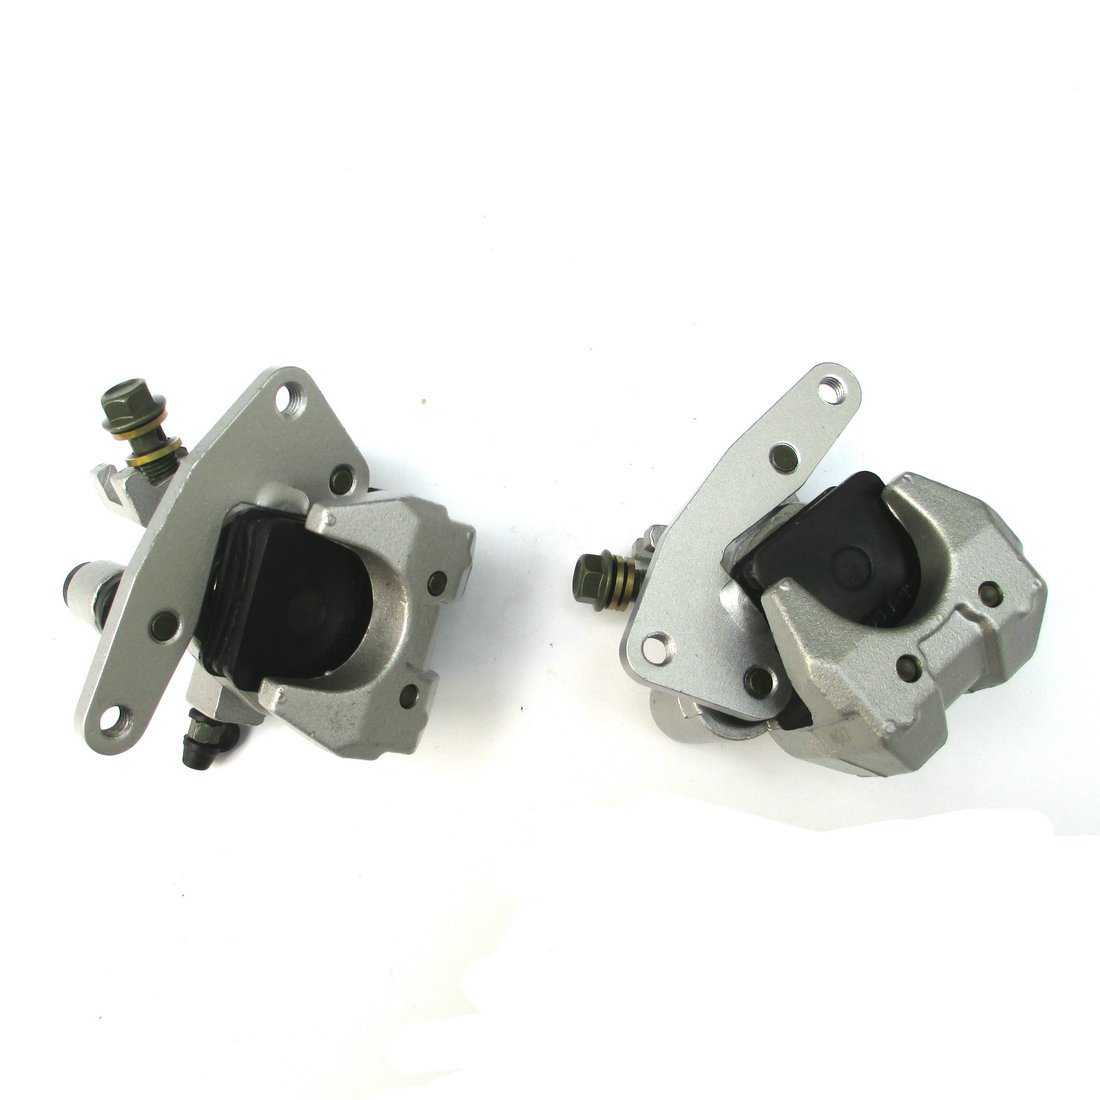 New Front Brake Caliper Set for Yamaha Banshee Big Bear Bruin Grizzly Raptor 350 Warrior by Unknown (Image #2)